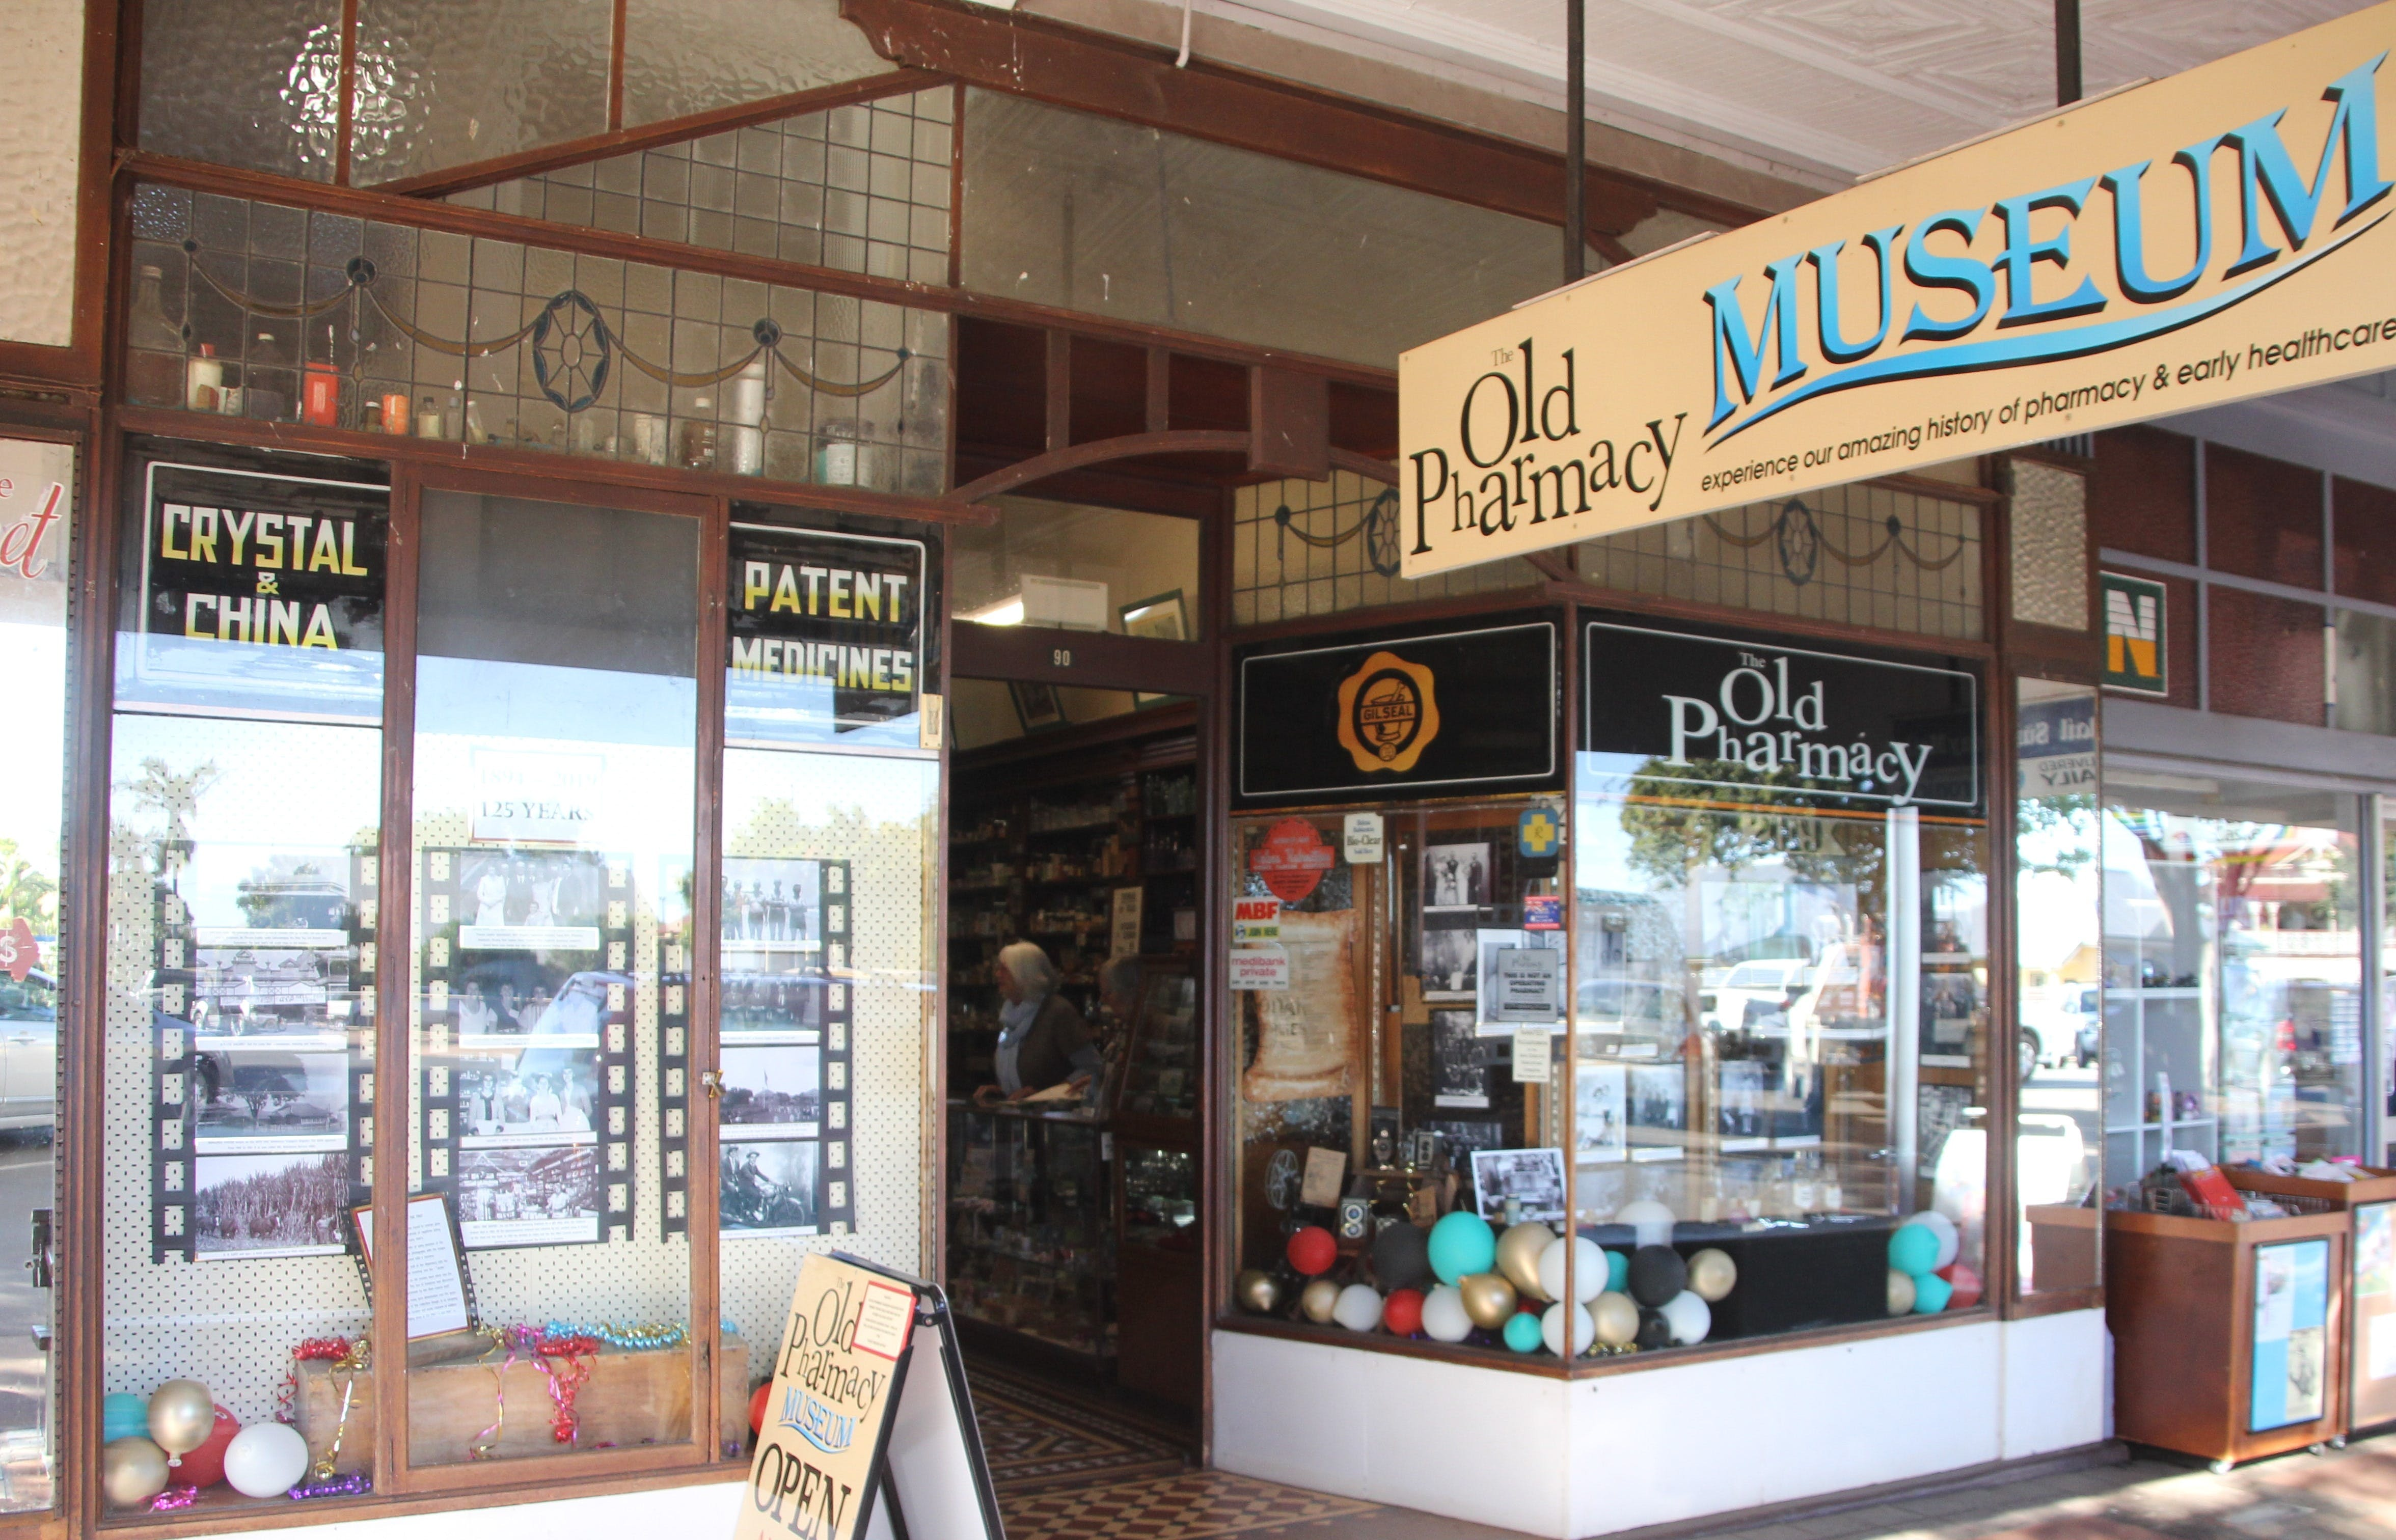 Old Pharmacy Museum  Childers - Tourism Gold Coast